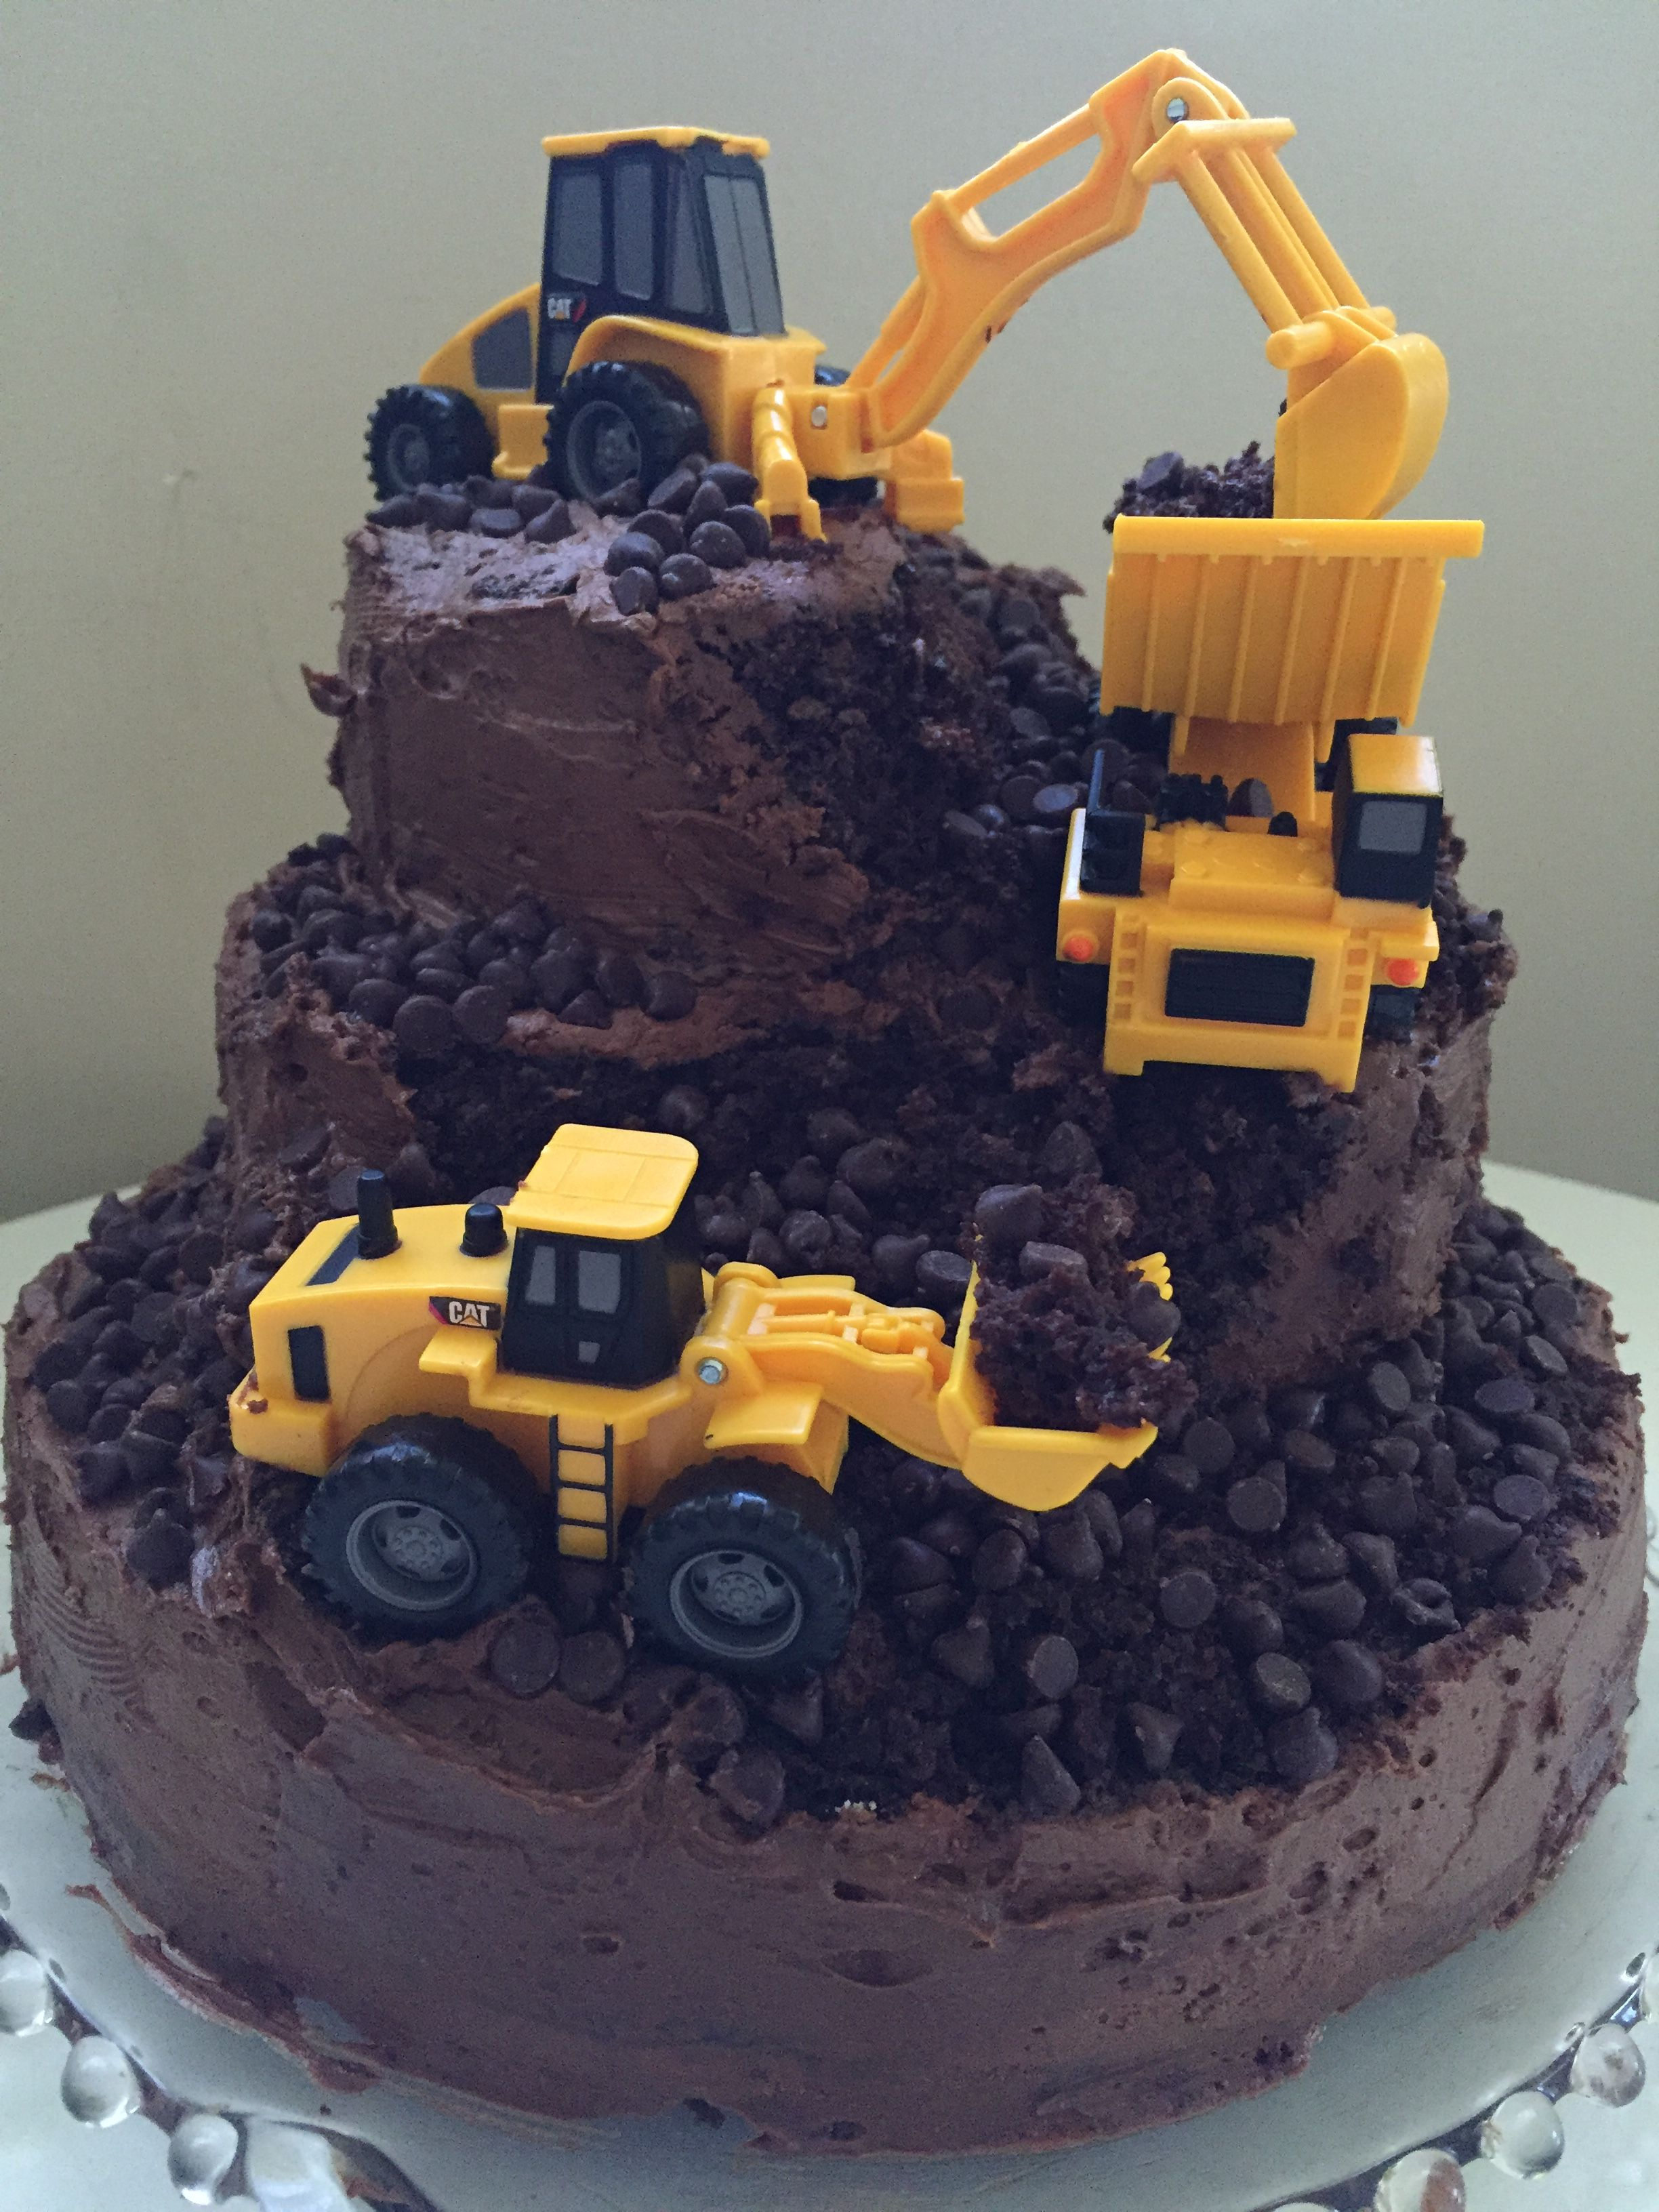 My construction cake :-) | Construction Party | Construction ...